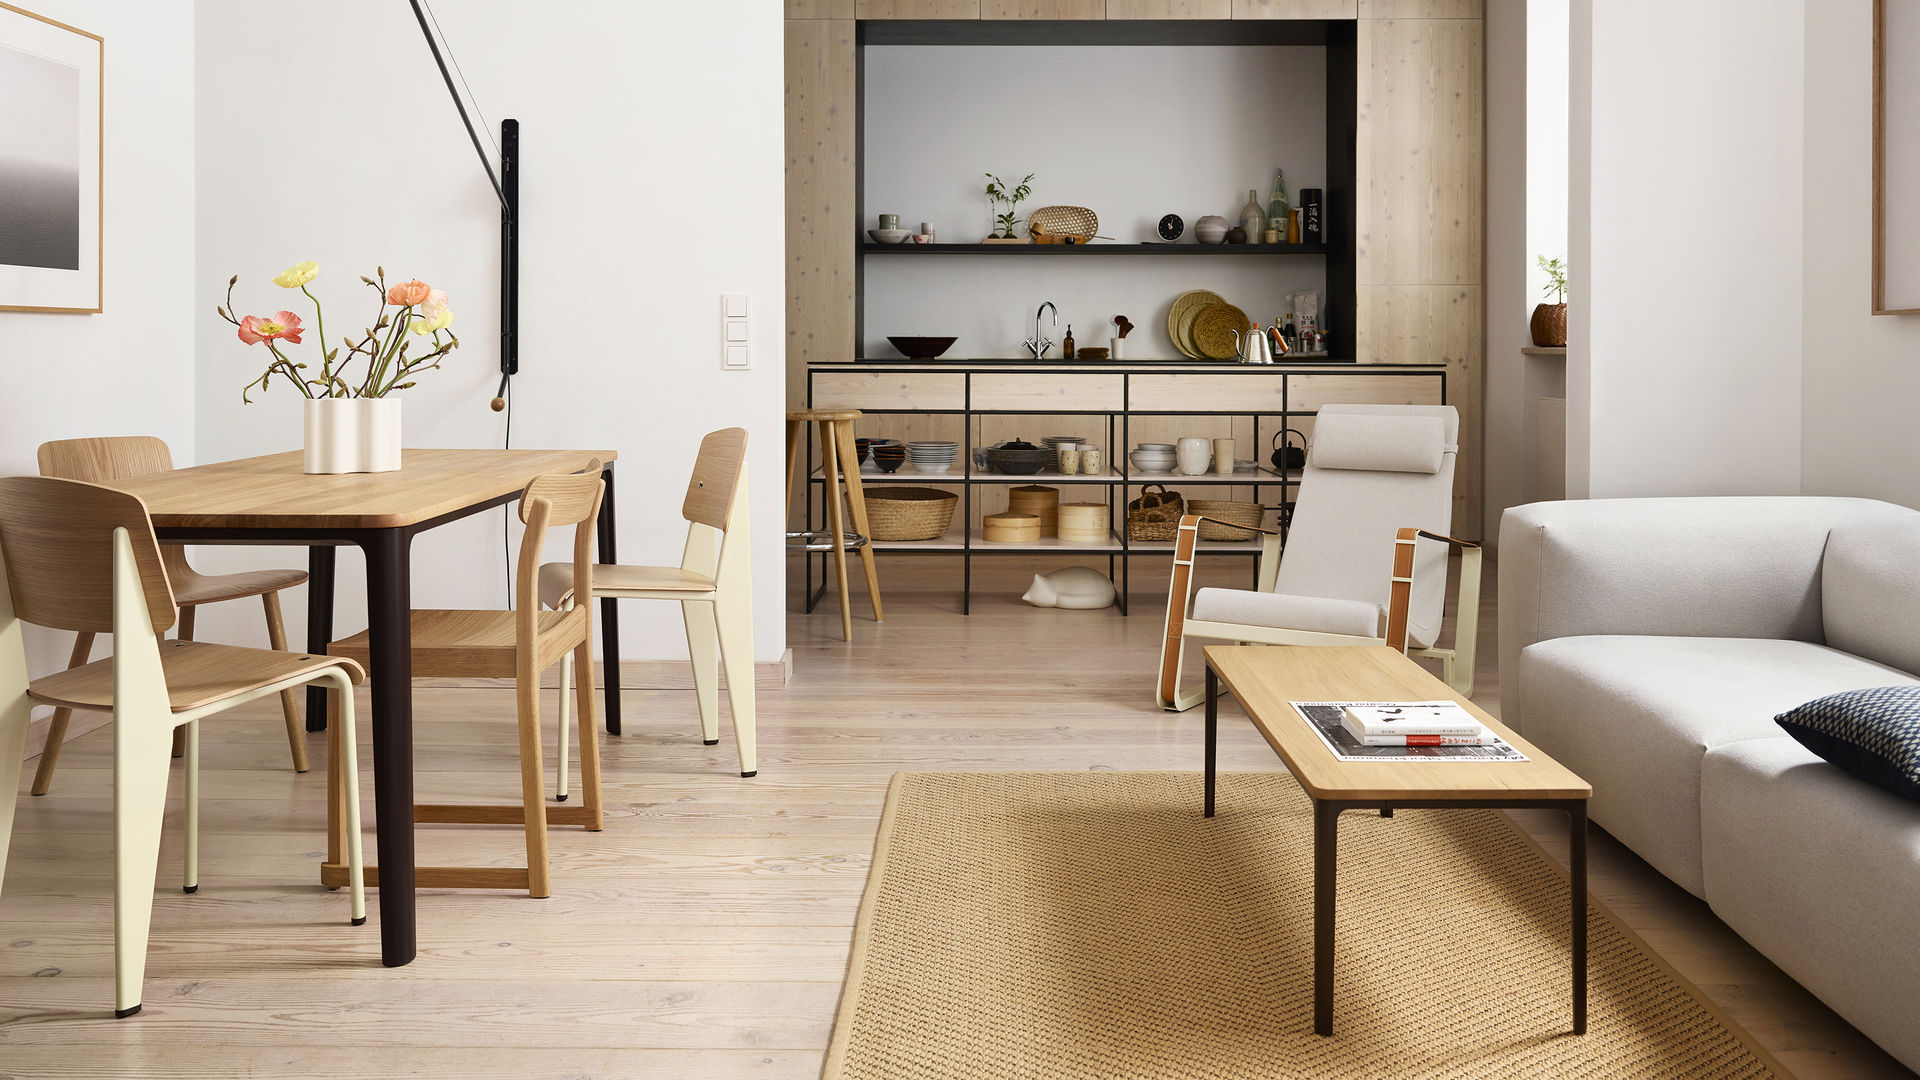 Plate Dining Table Standard HAL Plate Table Cité Soft Modular Sofa Potence Resting Animals Cat_web_16-9